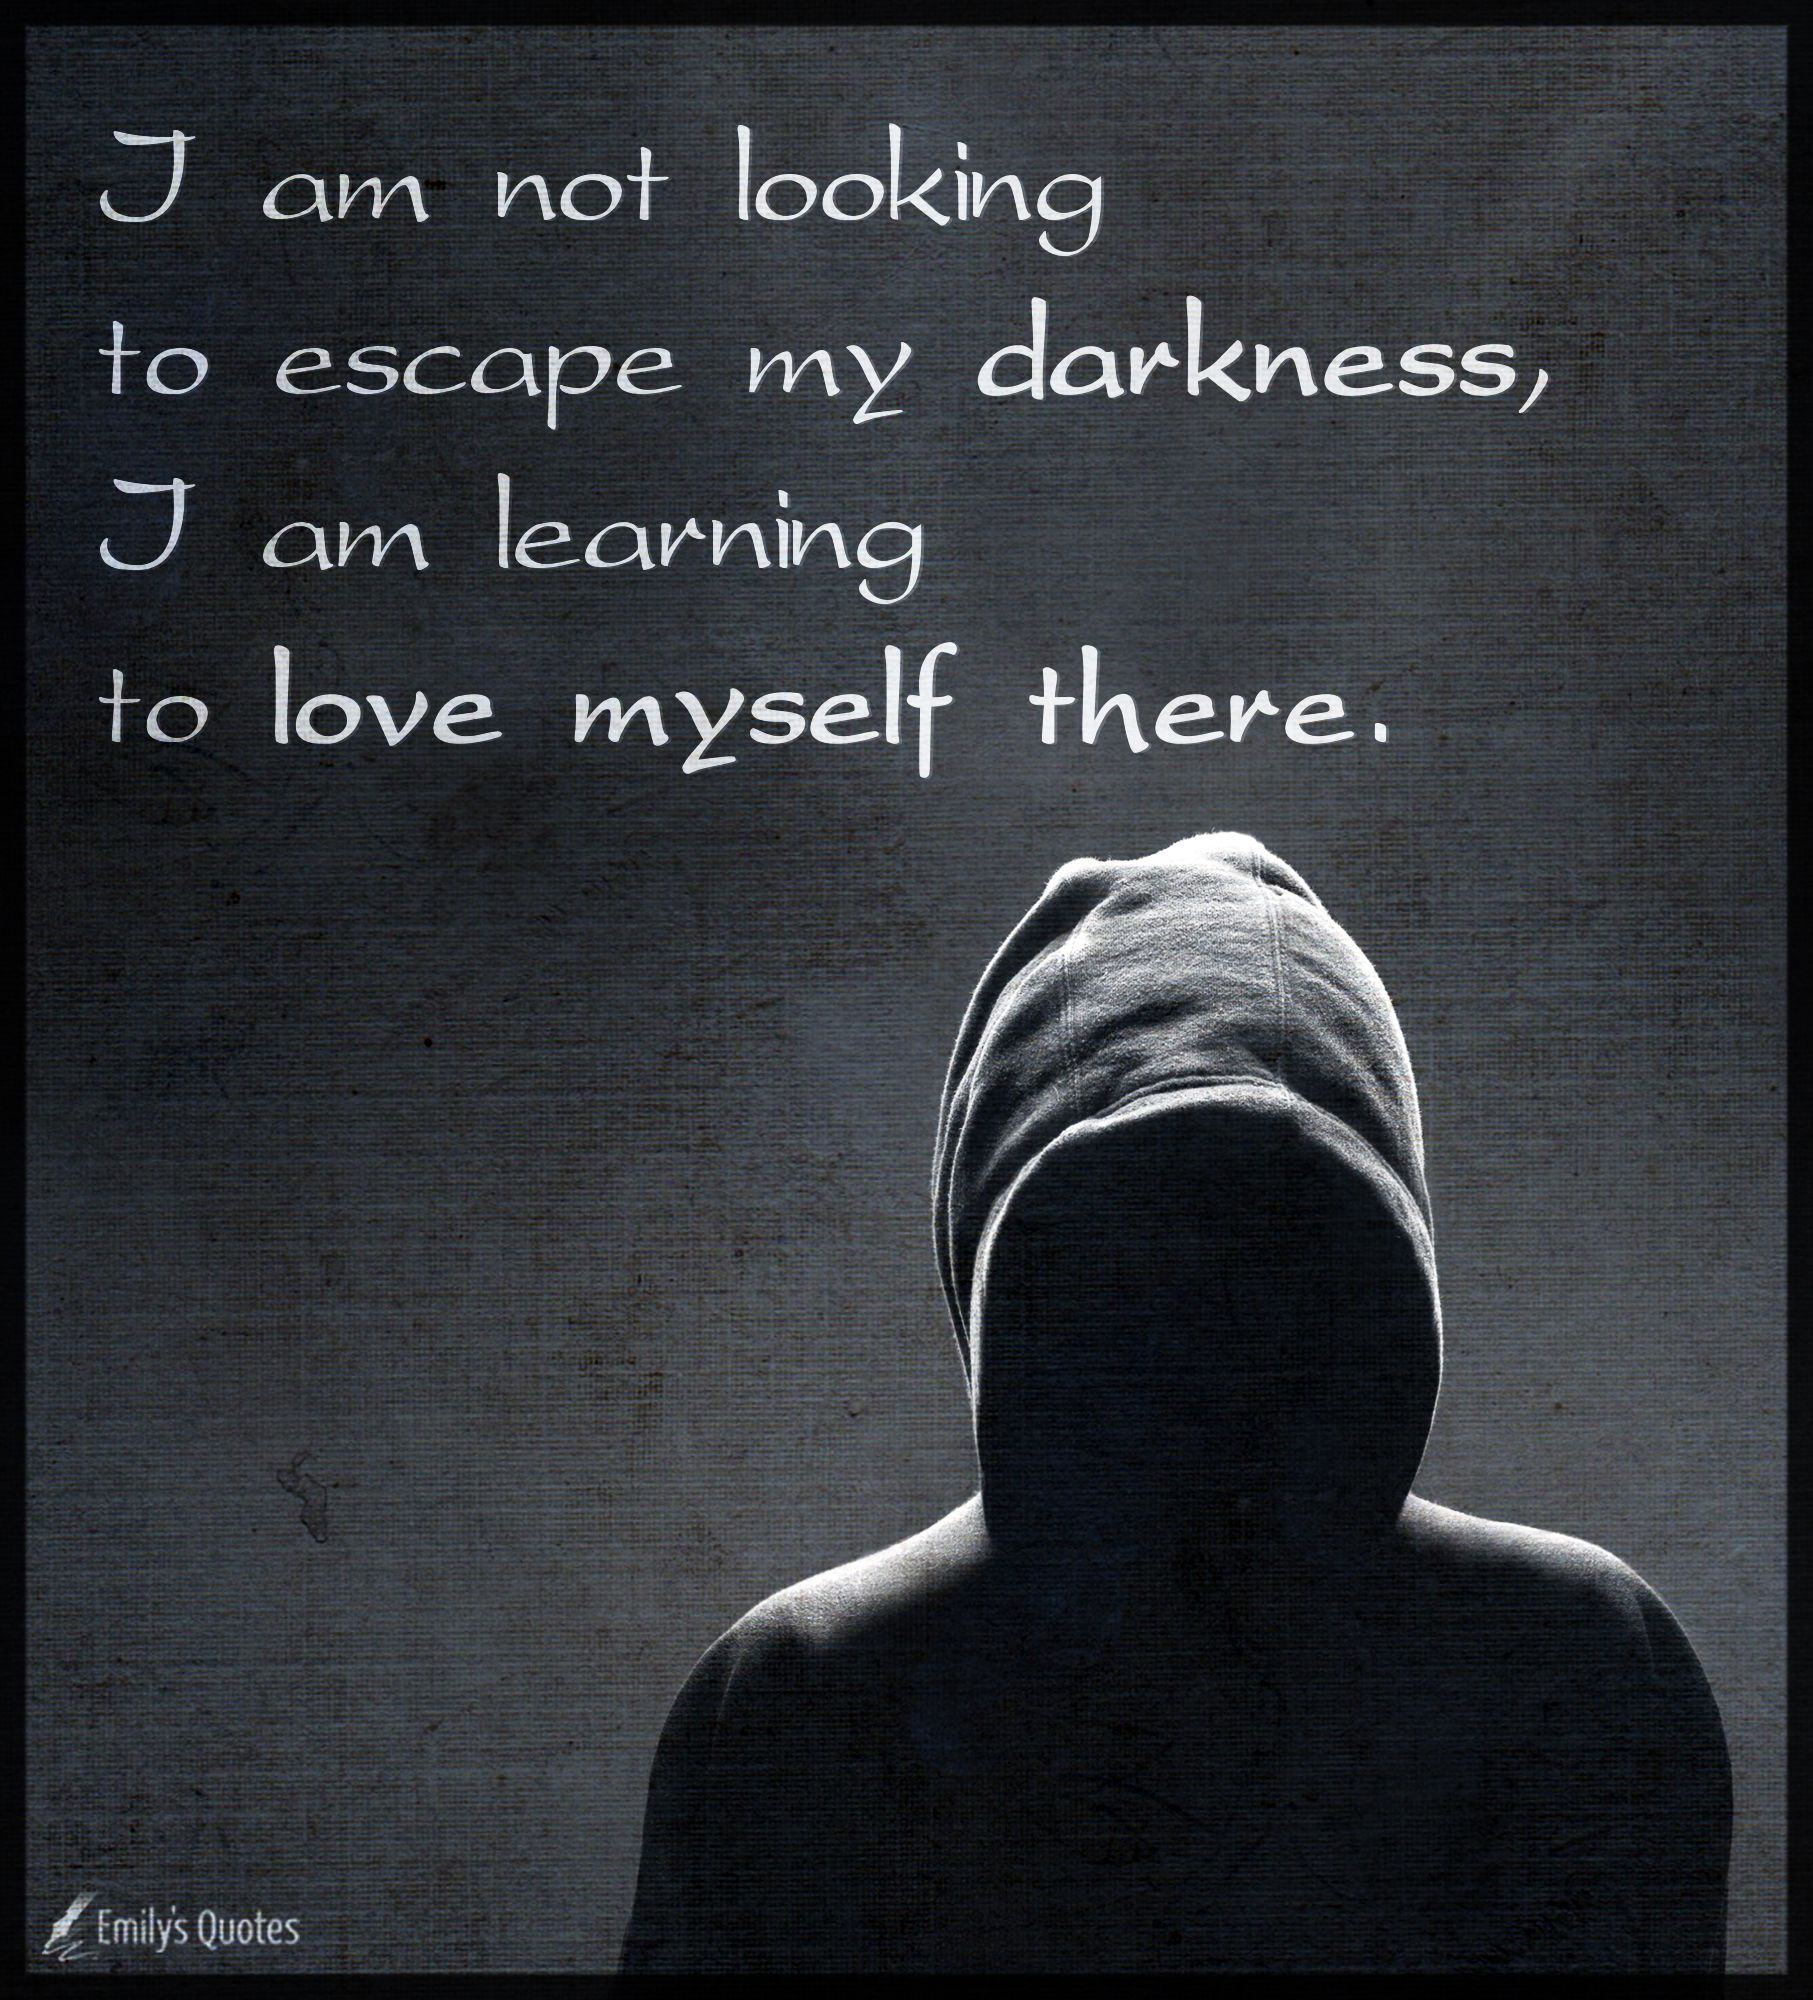 I Am Not Looking To Escape My Darkness I Am Learning To Love Myself There Popular Inspirational Quotes At Emilysquotes Learn To Love Love Me Quotes My Love